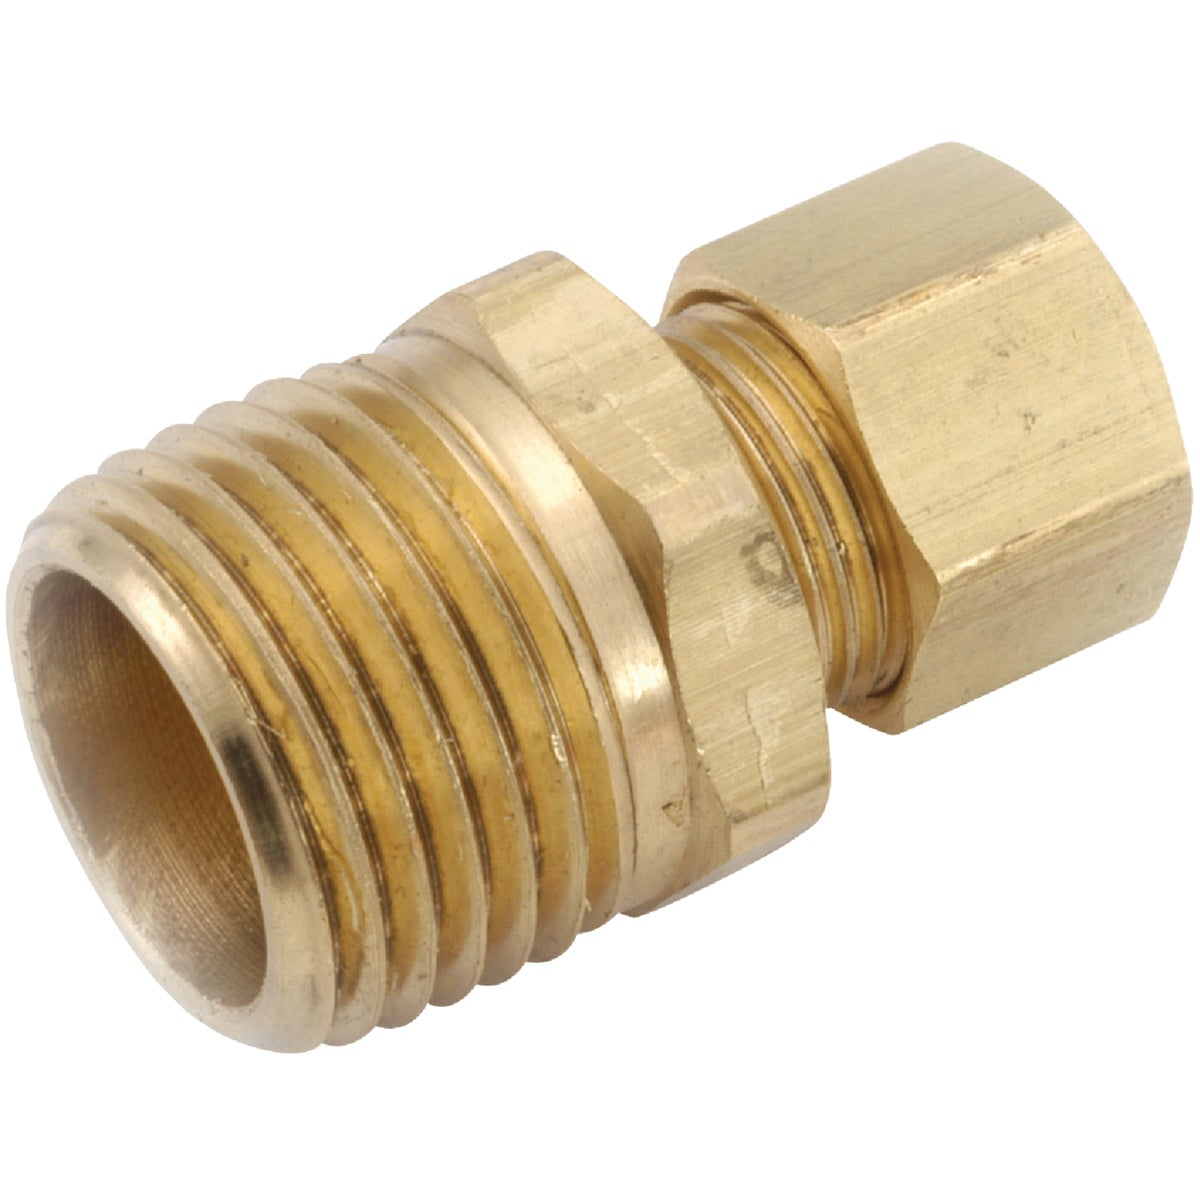 5/16X1/8 MALE CONNECTOR